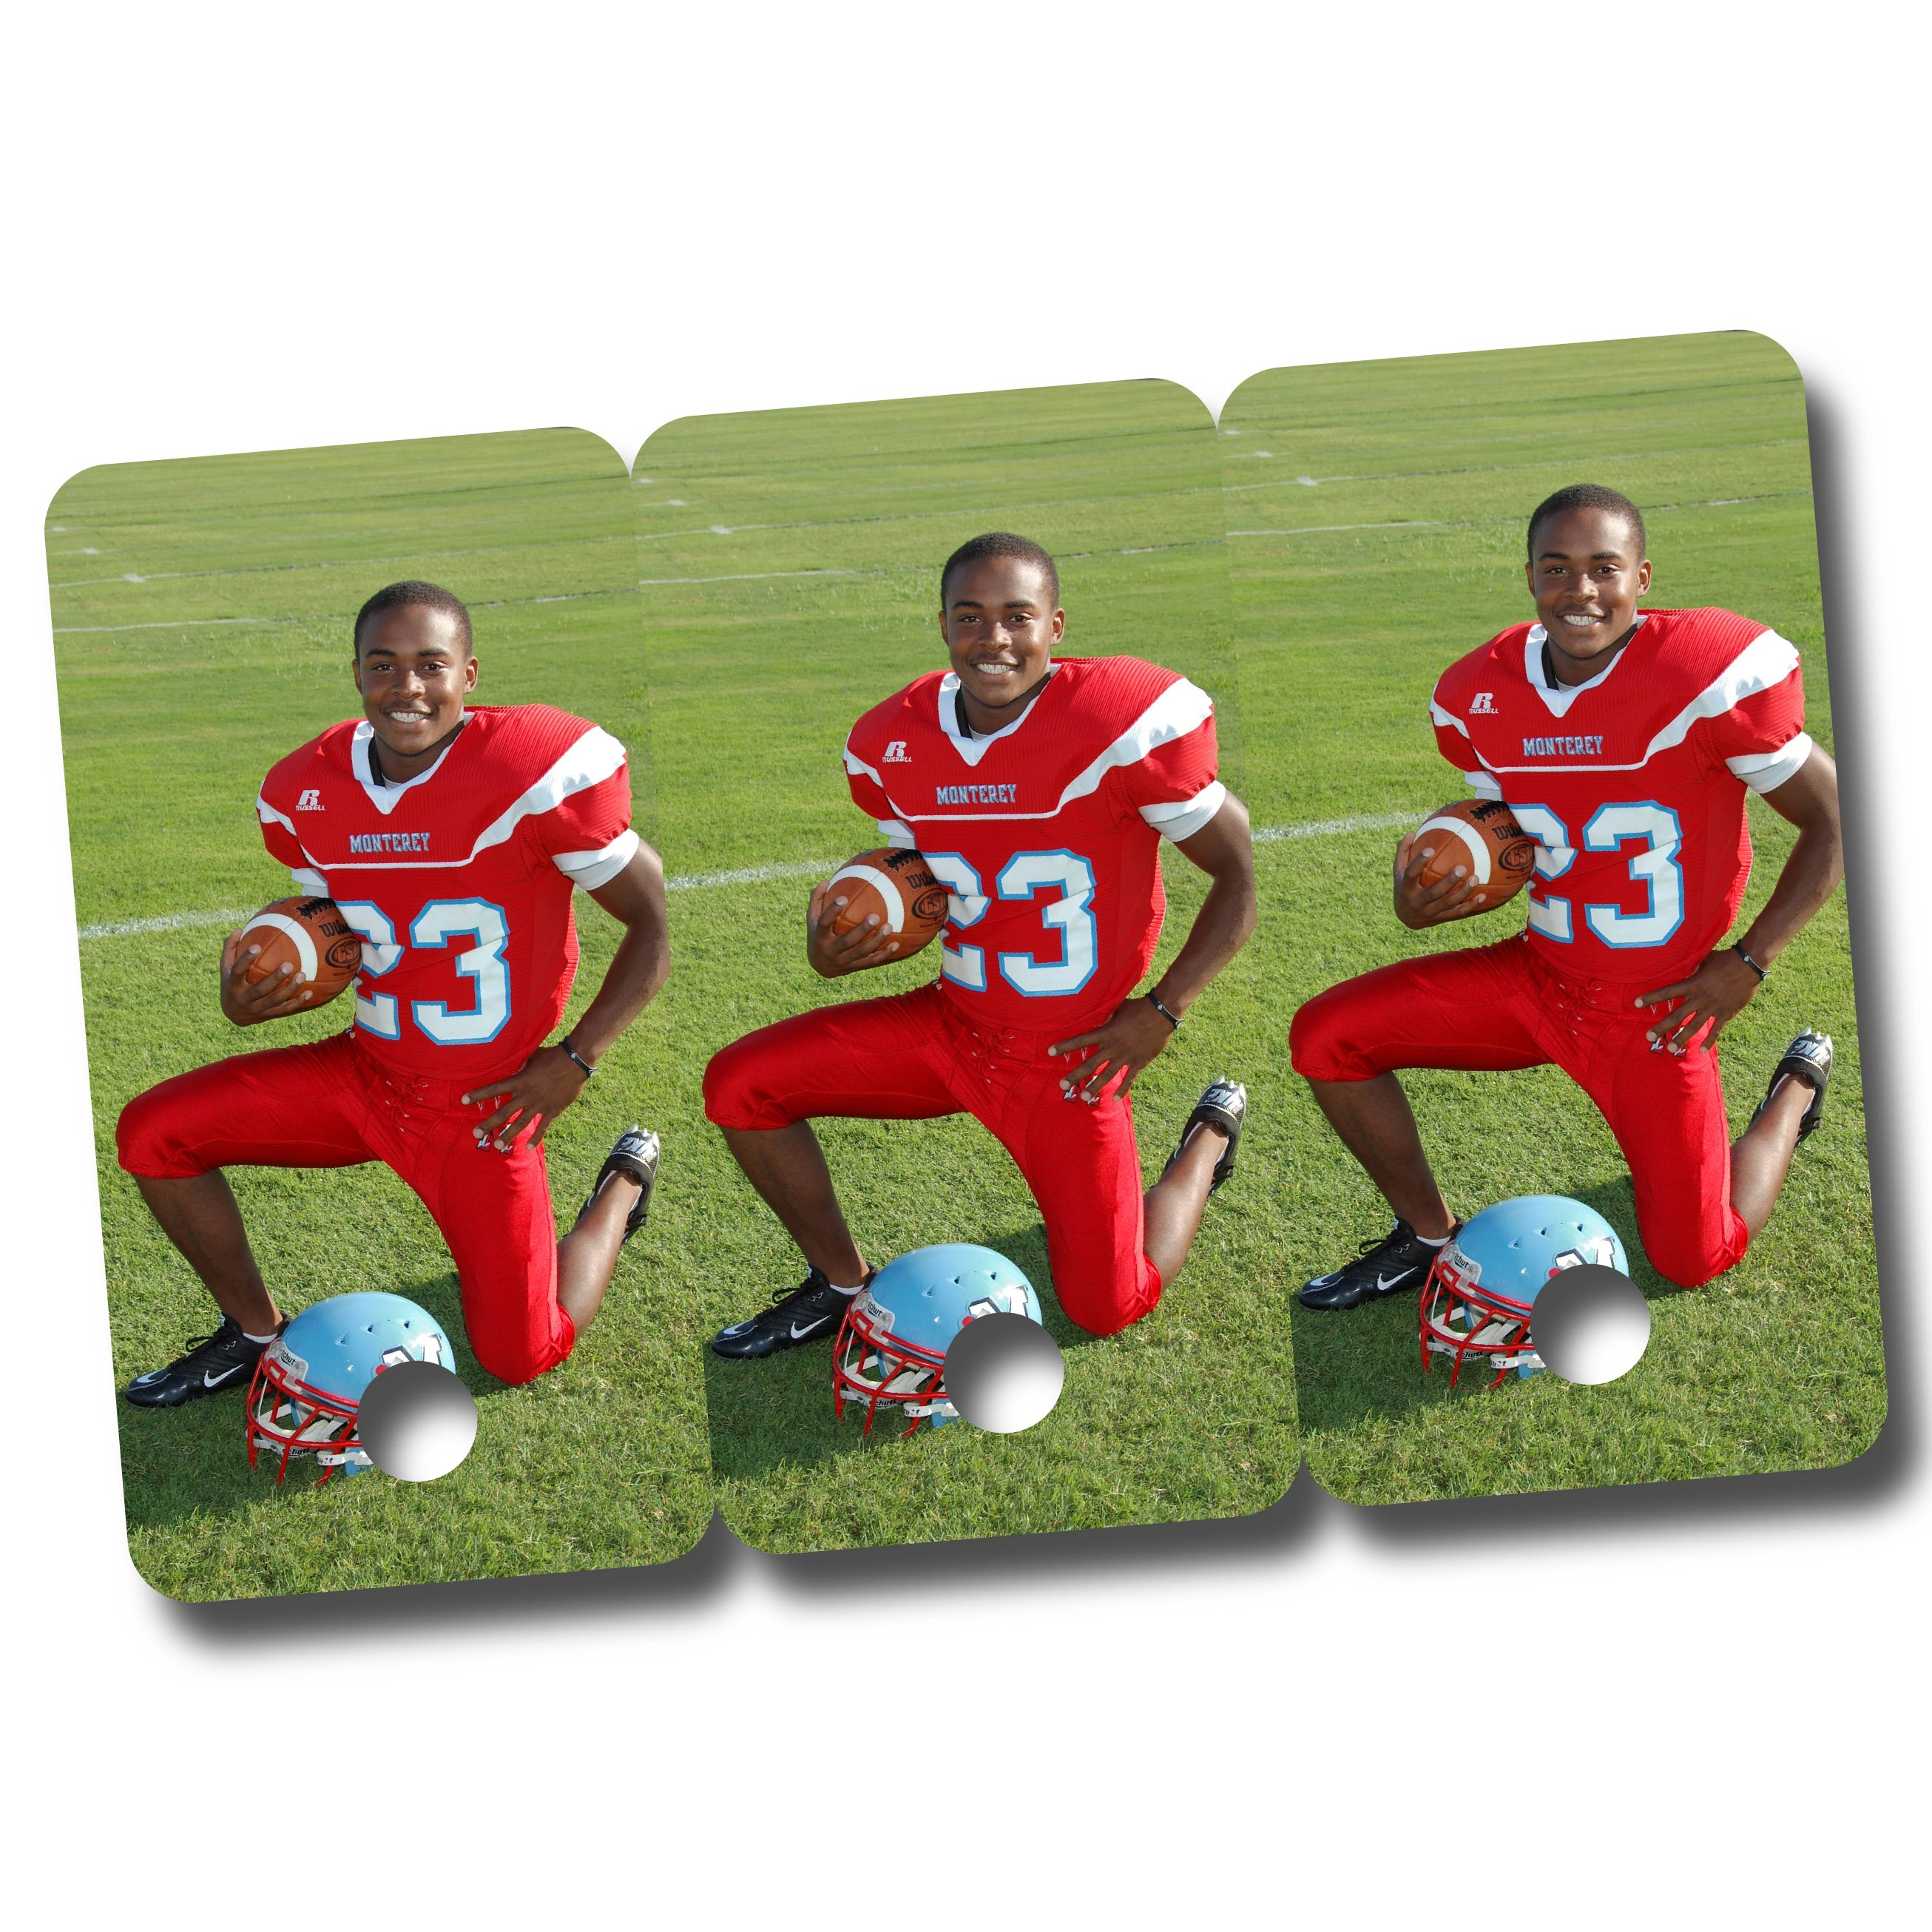 Football Player in Red Uniform Printed on Key Fobs